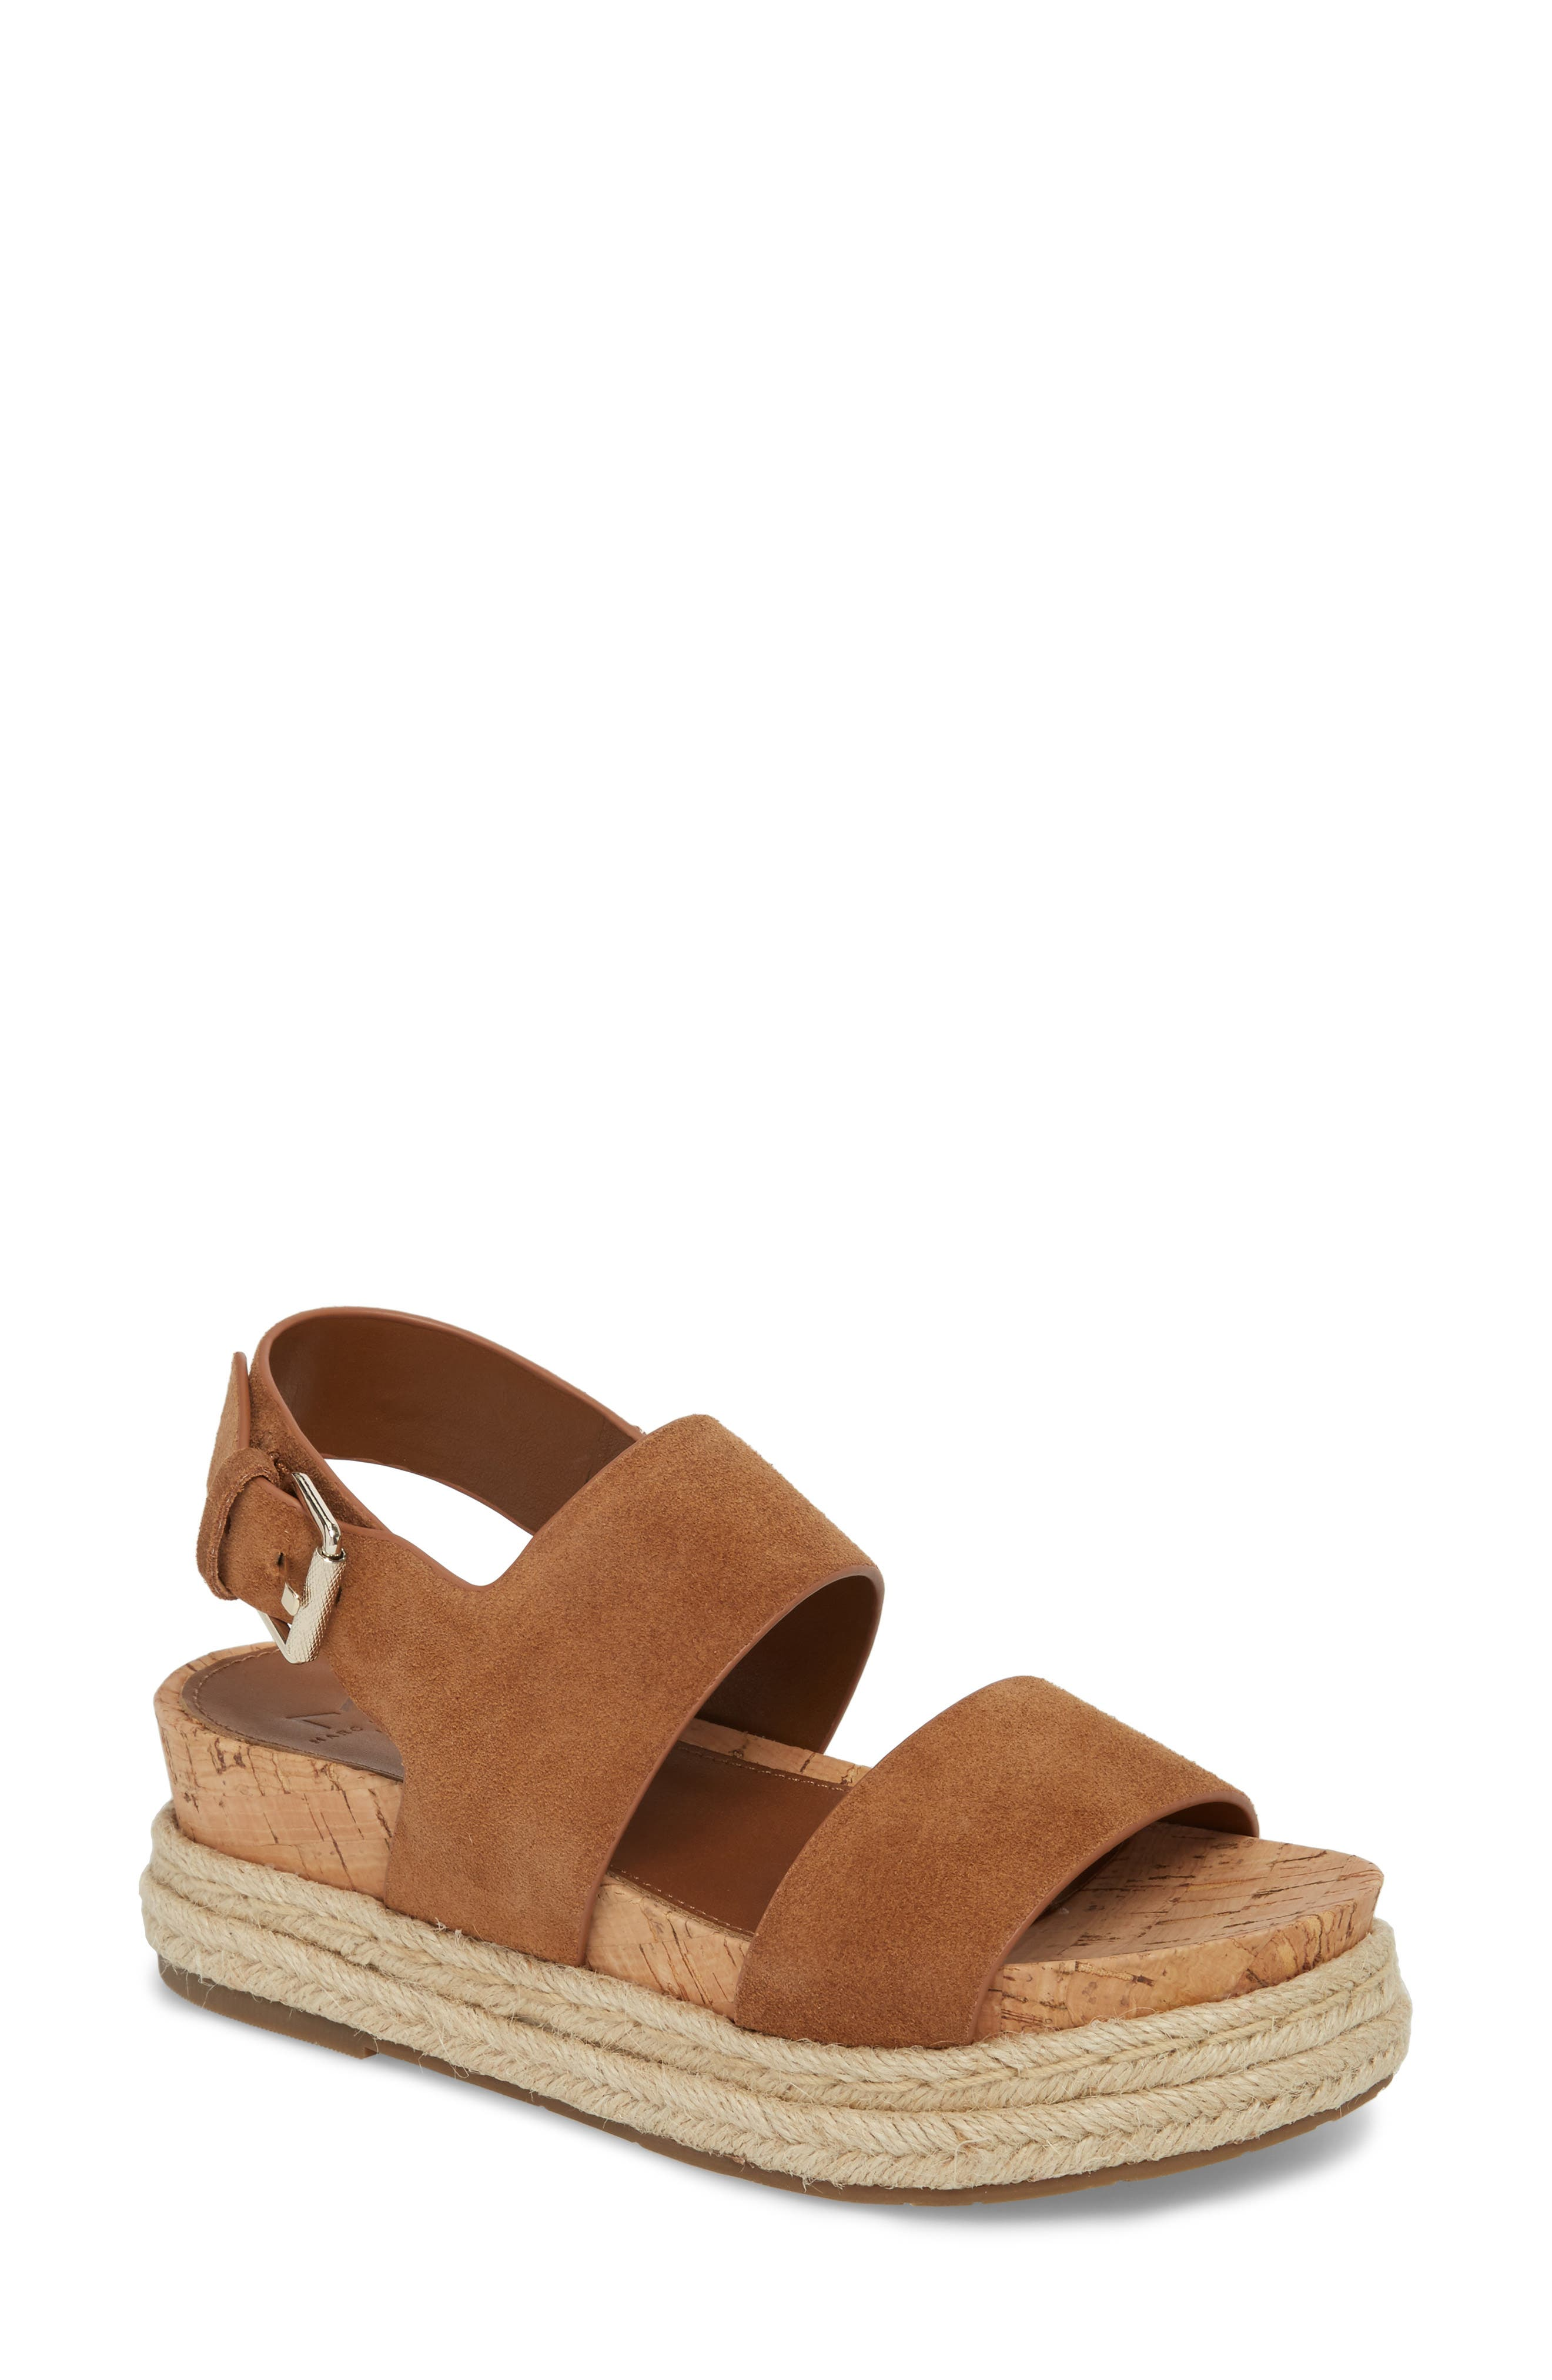 Marc Fisher Ltd Oria Espadrille Platform Sandal, Brown